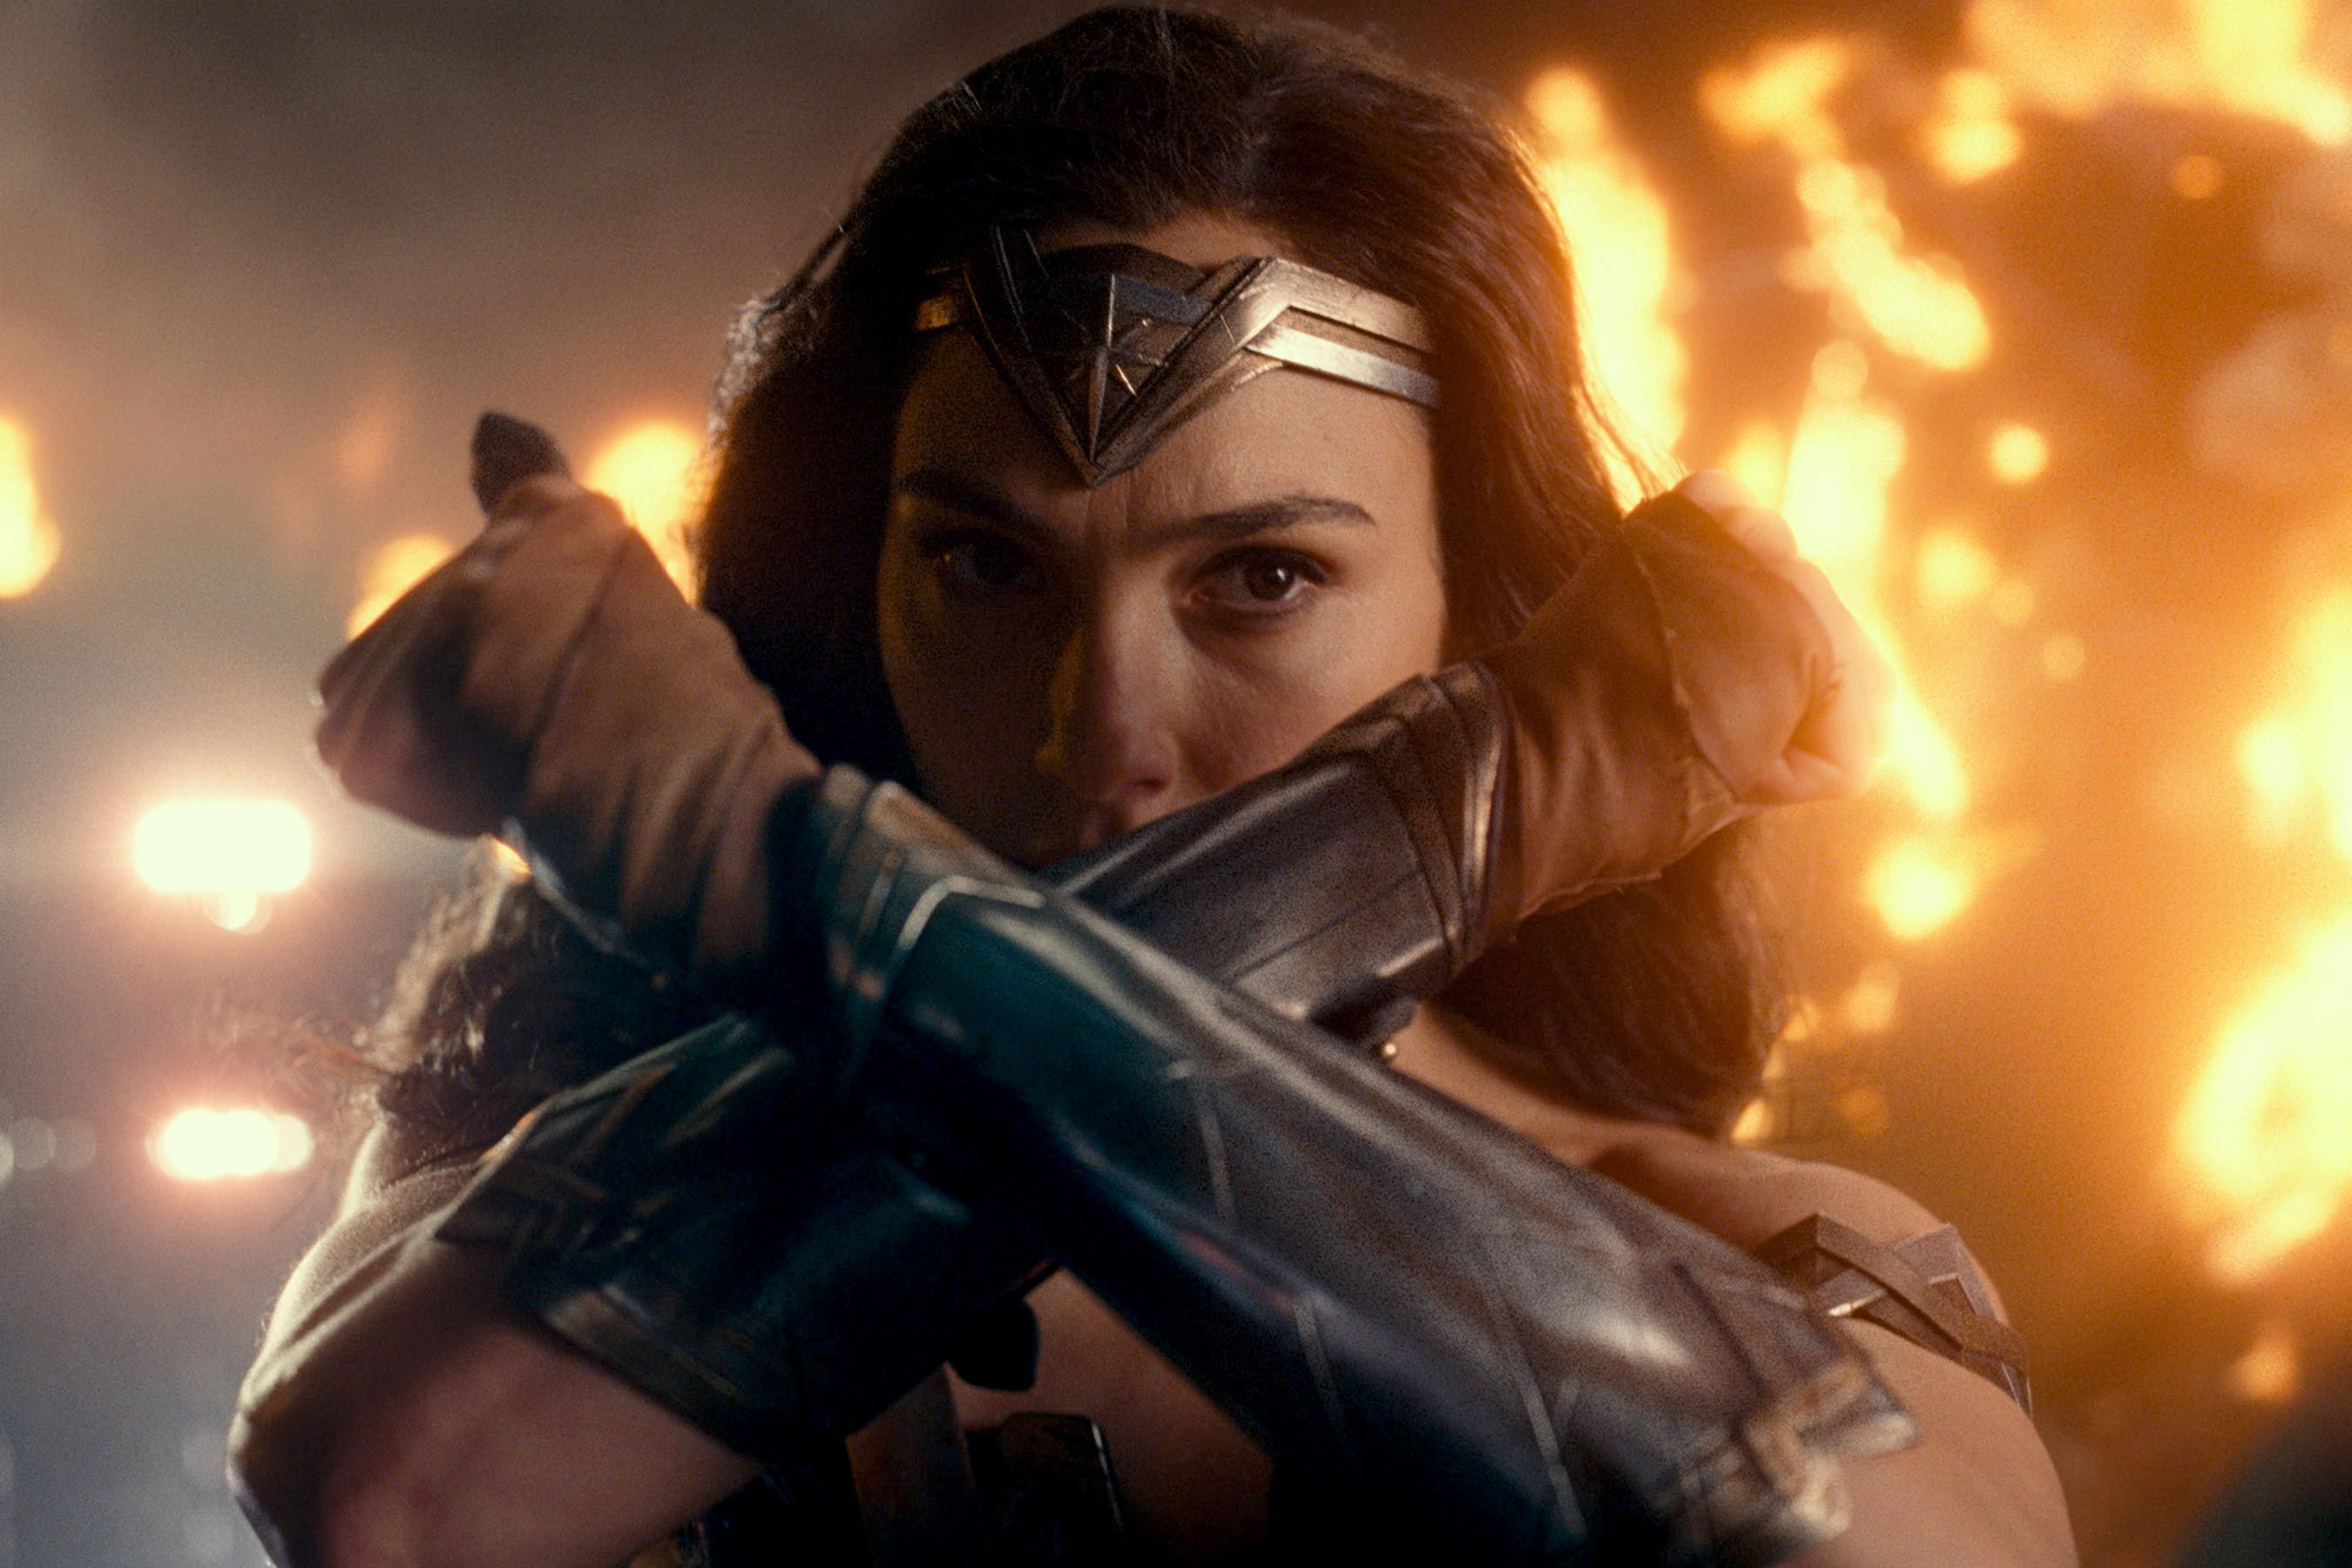 Wallpaper Wonder Woman 2017 Movies 6723: Wonder Woman In Justice League 2017, HD Movies, 4k